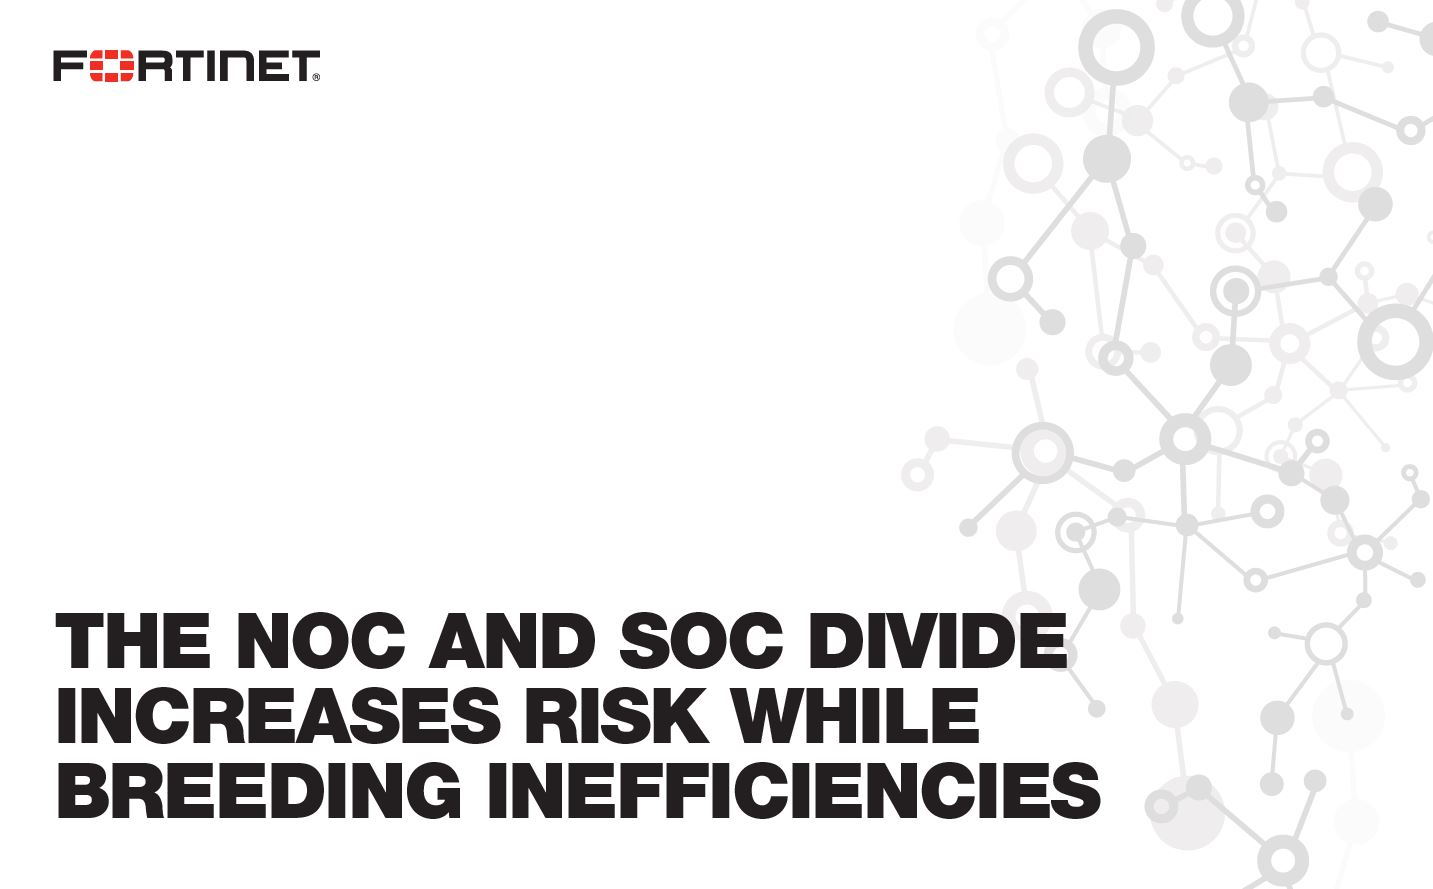 The NOC and SOC Divide: Increased Risk and Inefficiencies